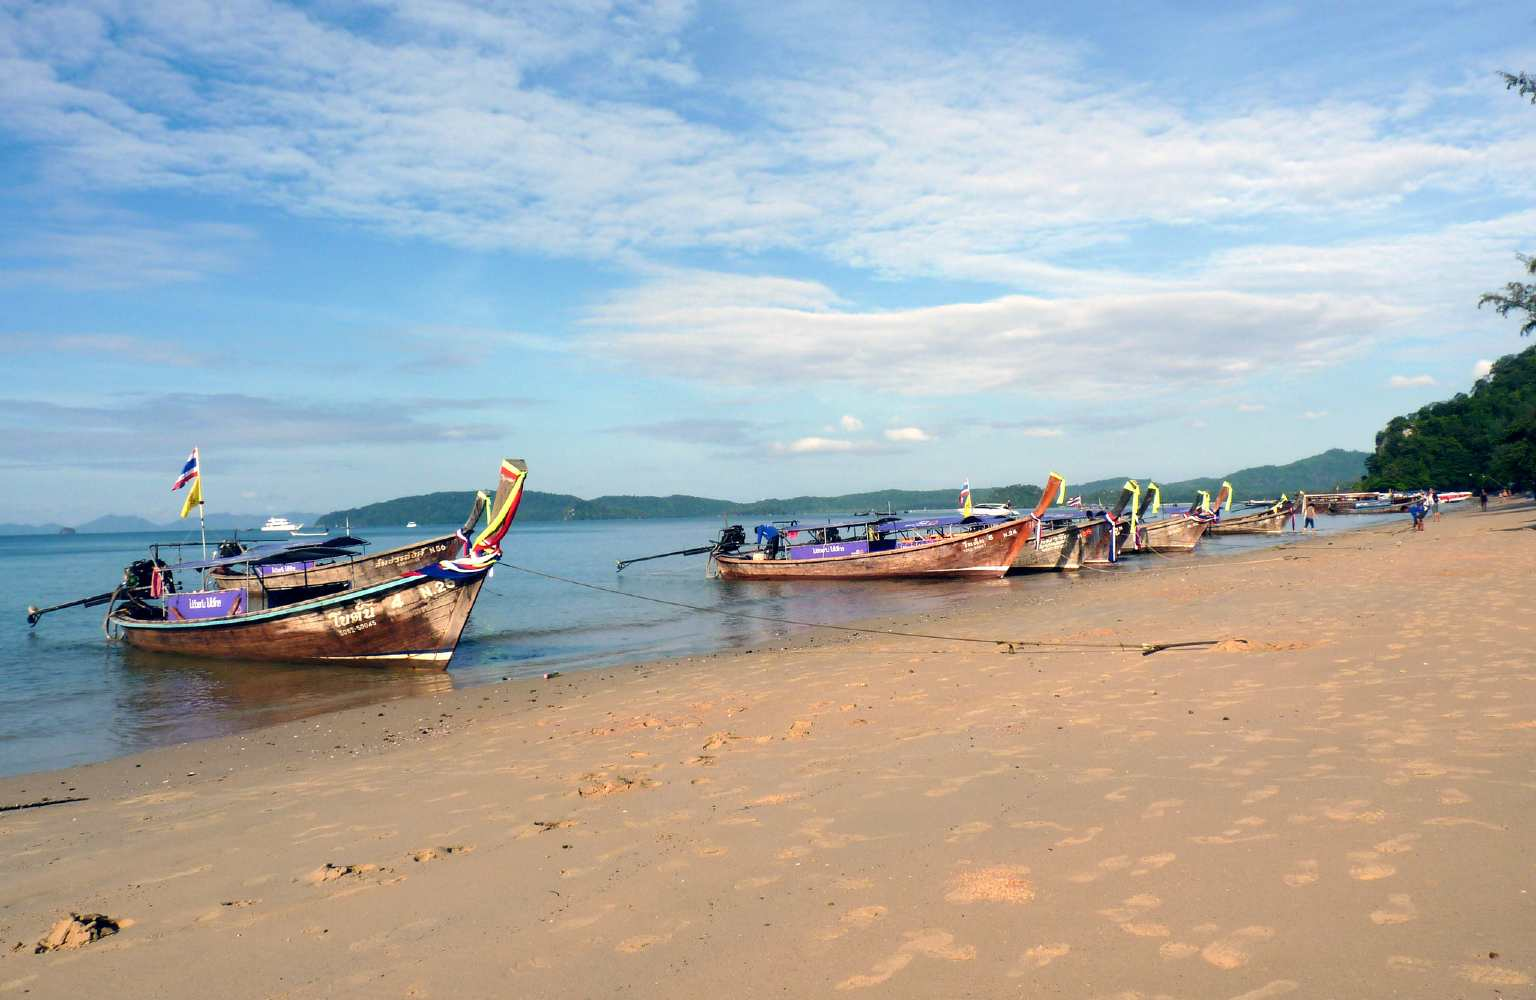 Longtail boats at Ao Nang Beach